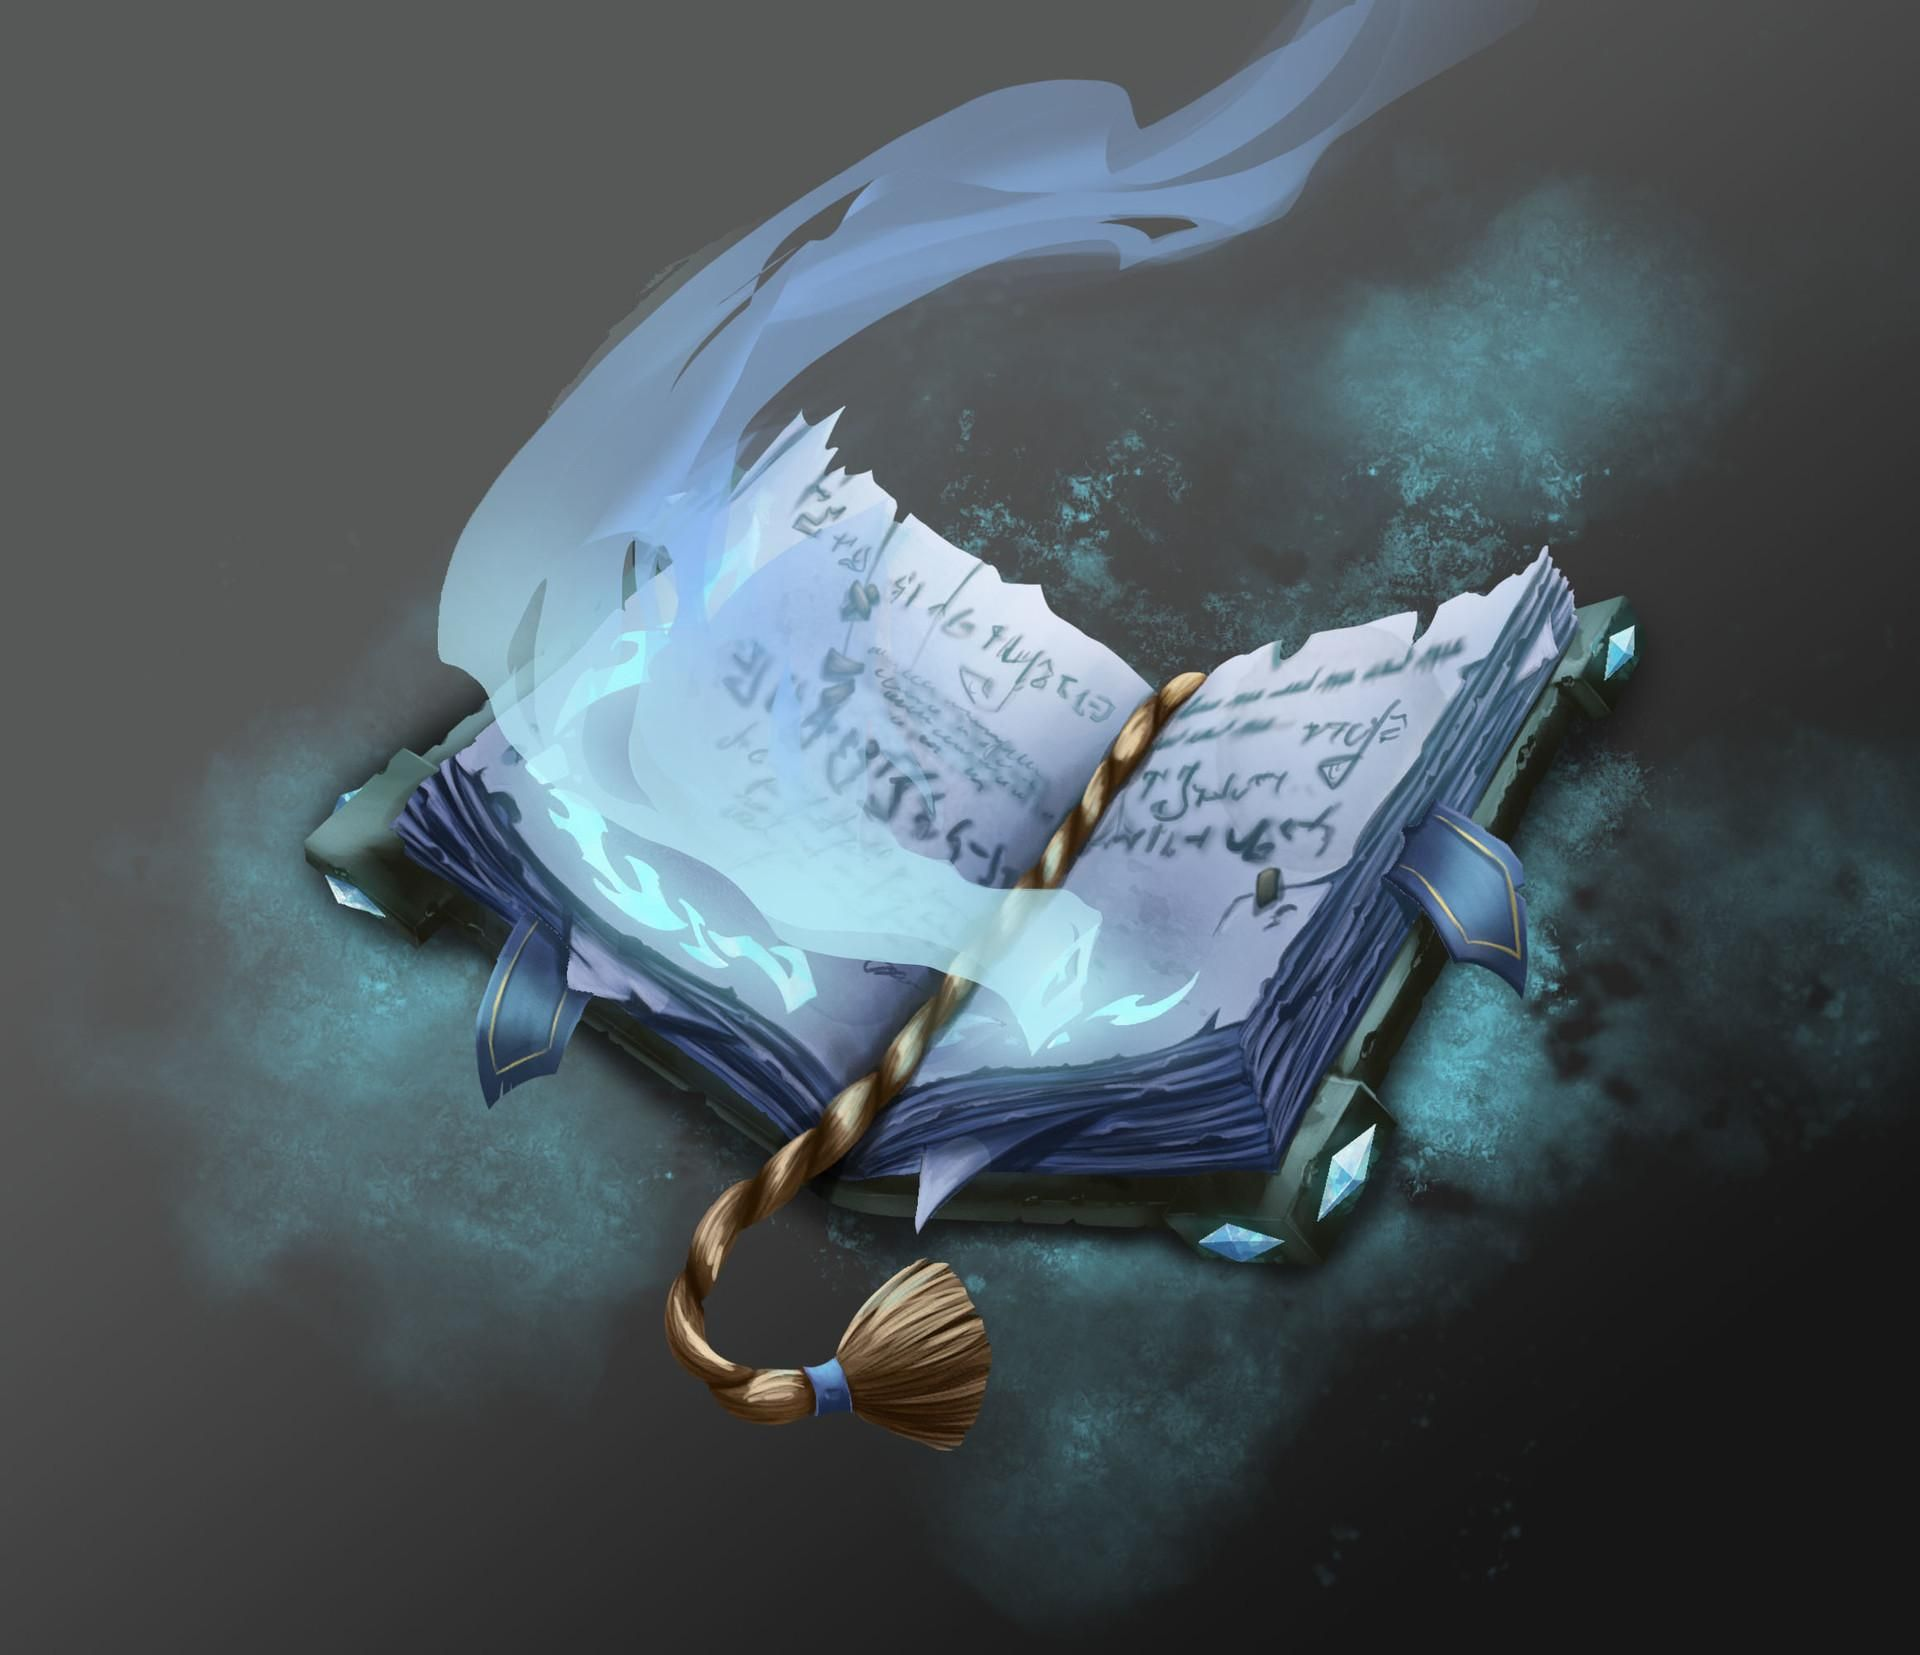 Harrowson S Pocketbook A Small Handful Of Spells For Those Looking To Spice Up Their Repertoire Unearthedarcana Fantasy Props Magical Book Magic Art